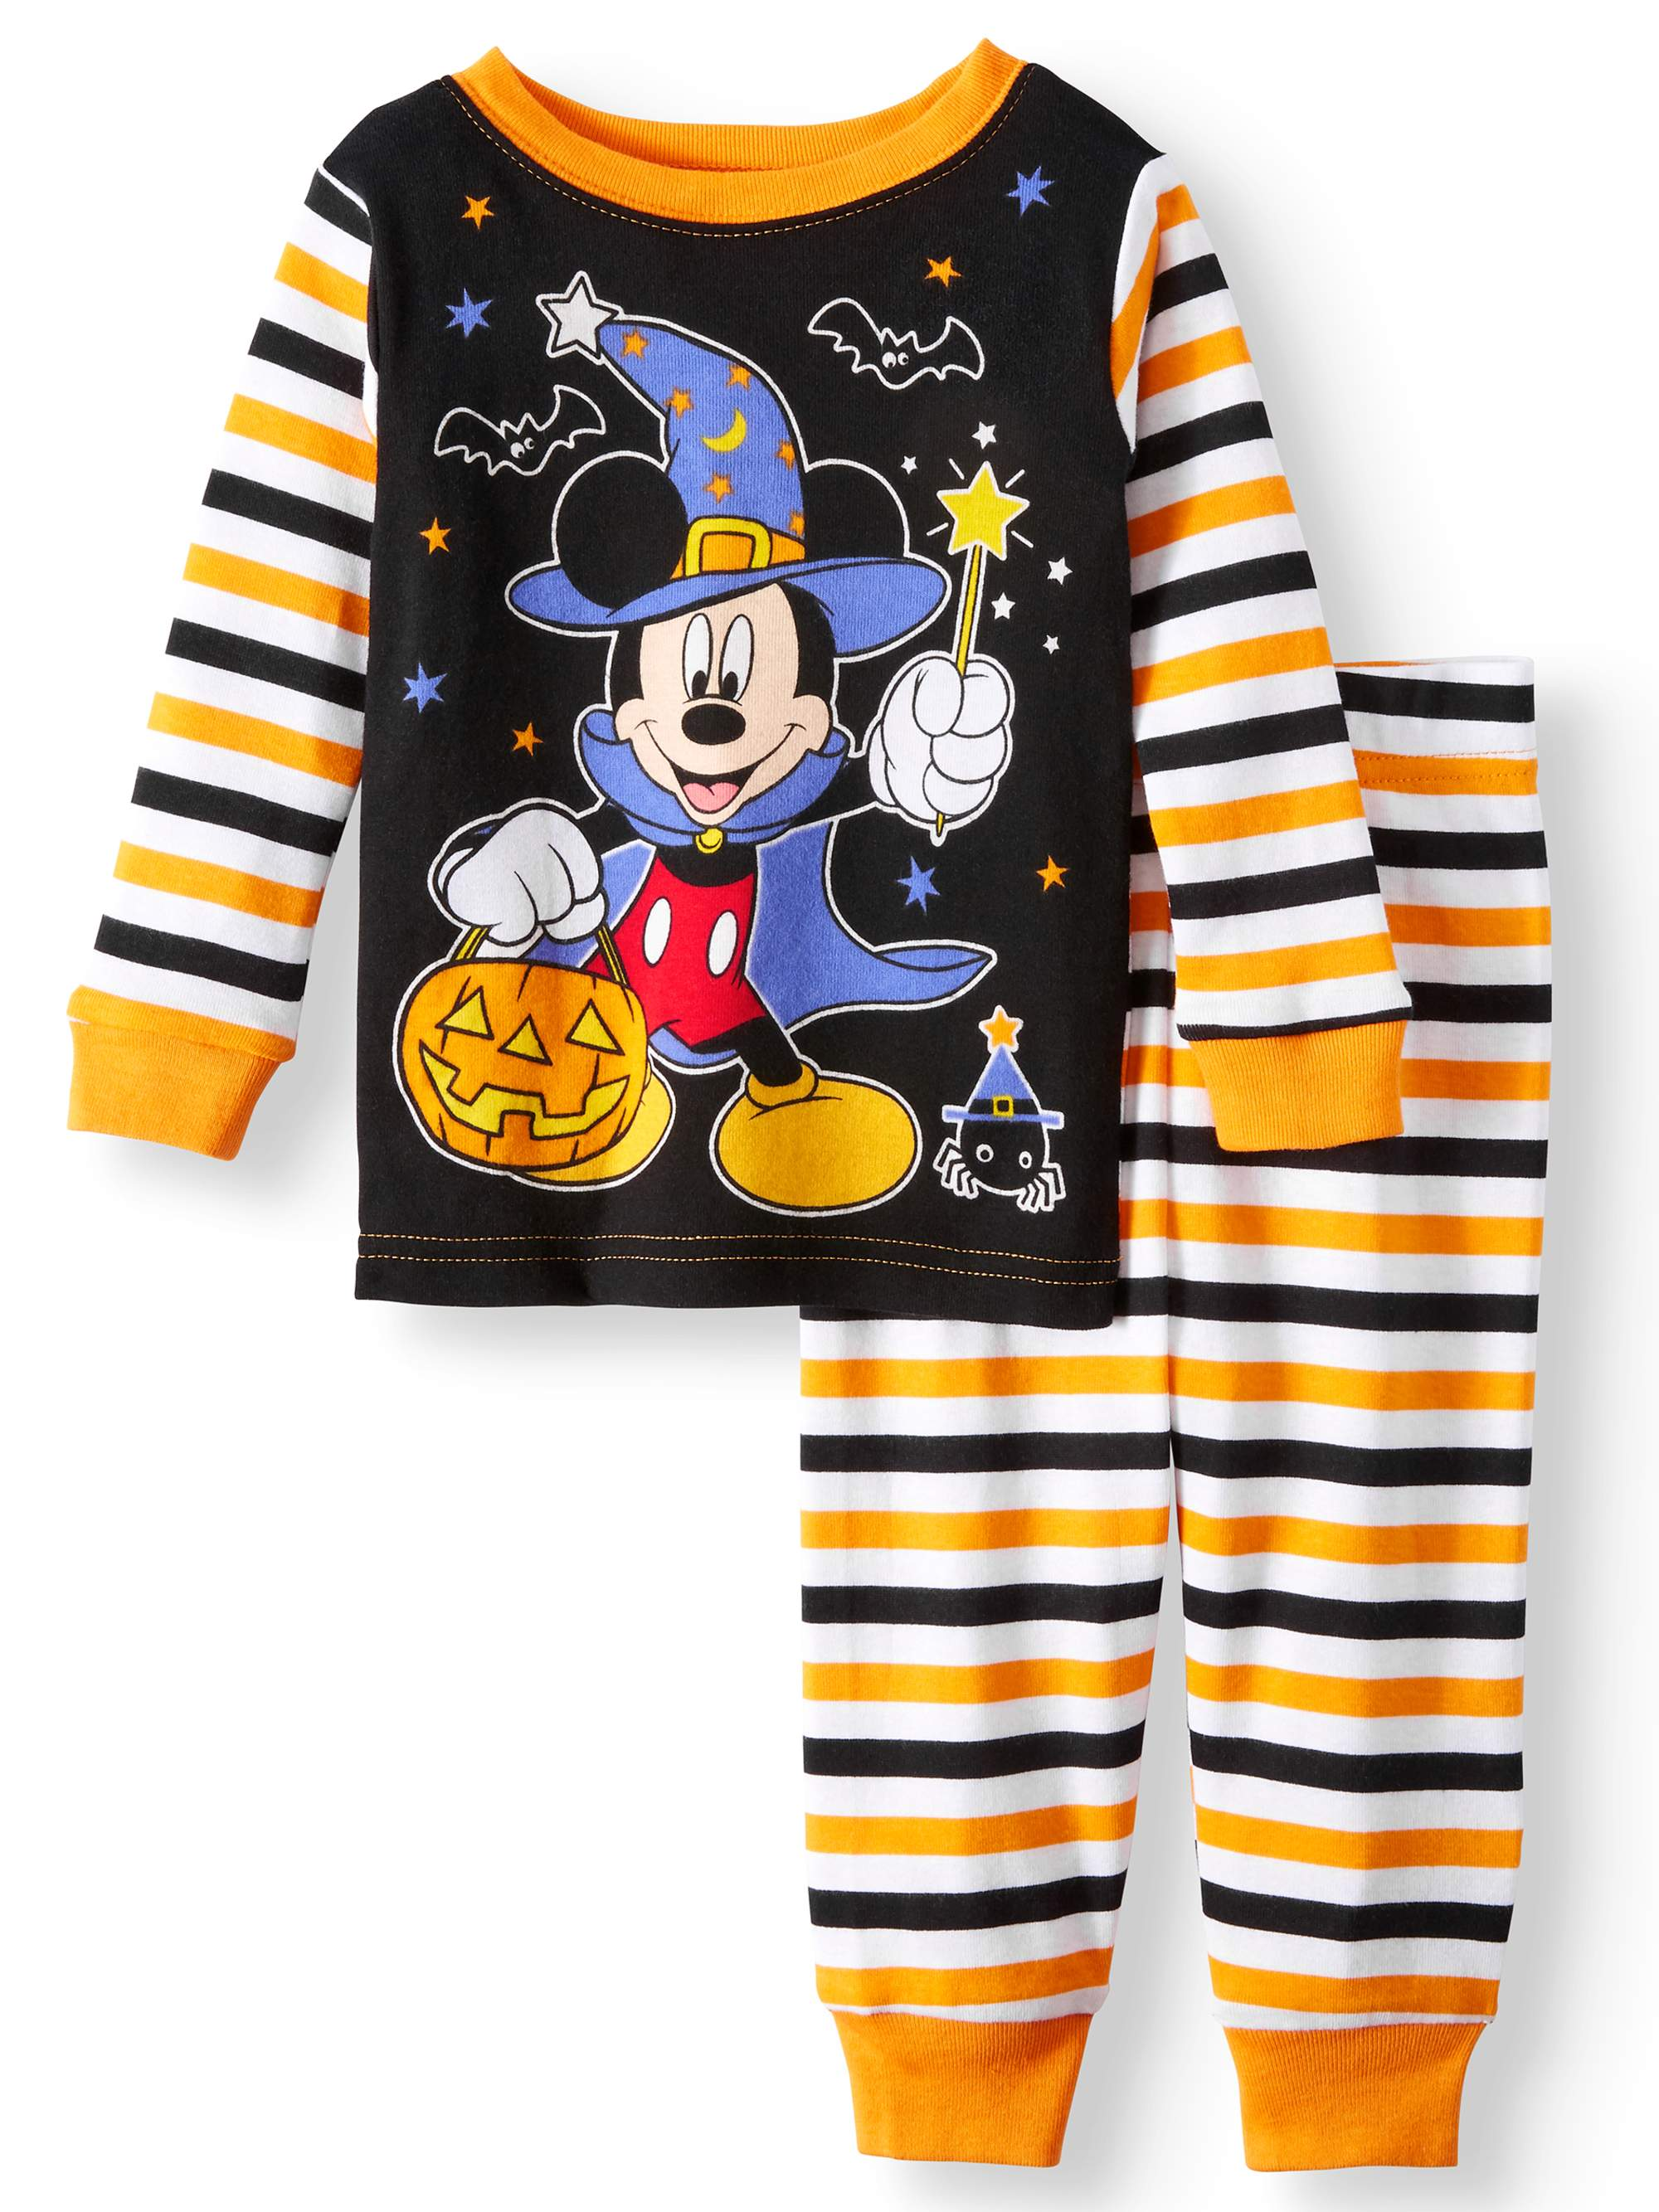 Halloween Glow-in-the-Dark Cotton Tight Fit Pajamas, 2-piece Set (Baby Boys)